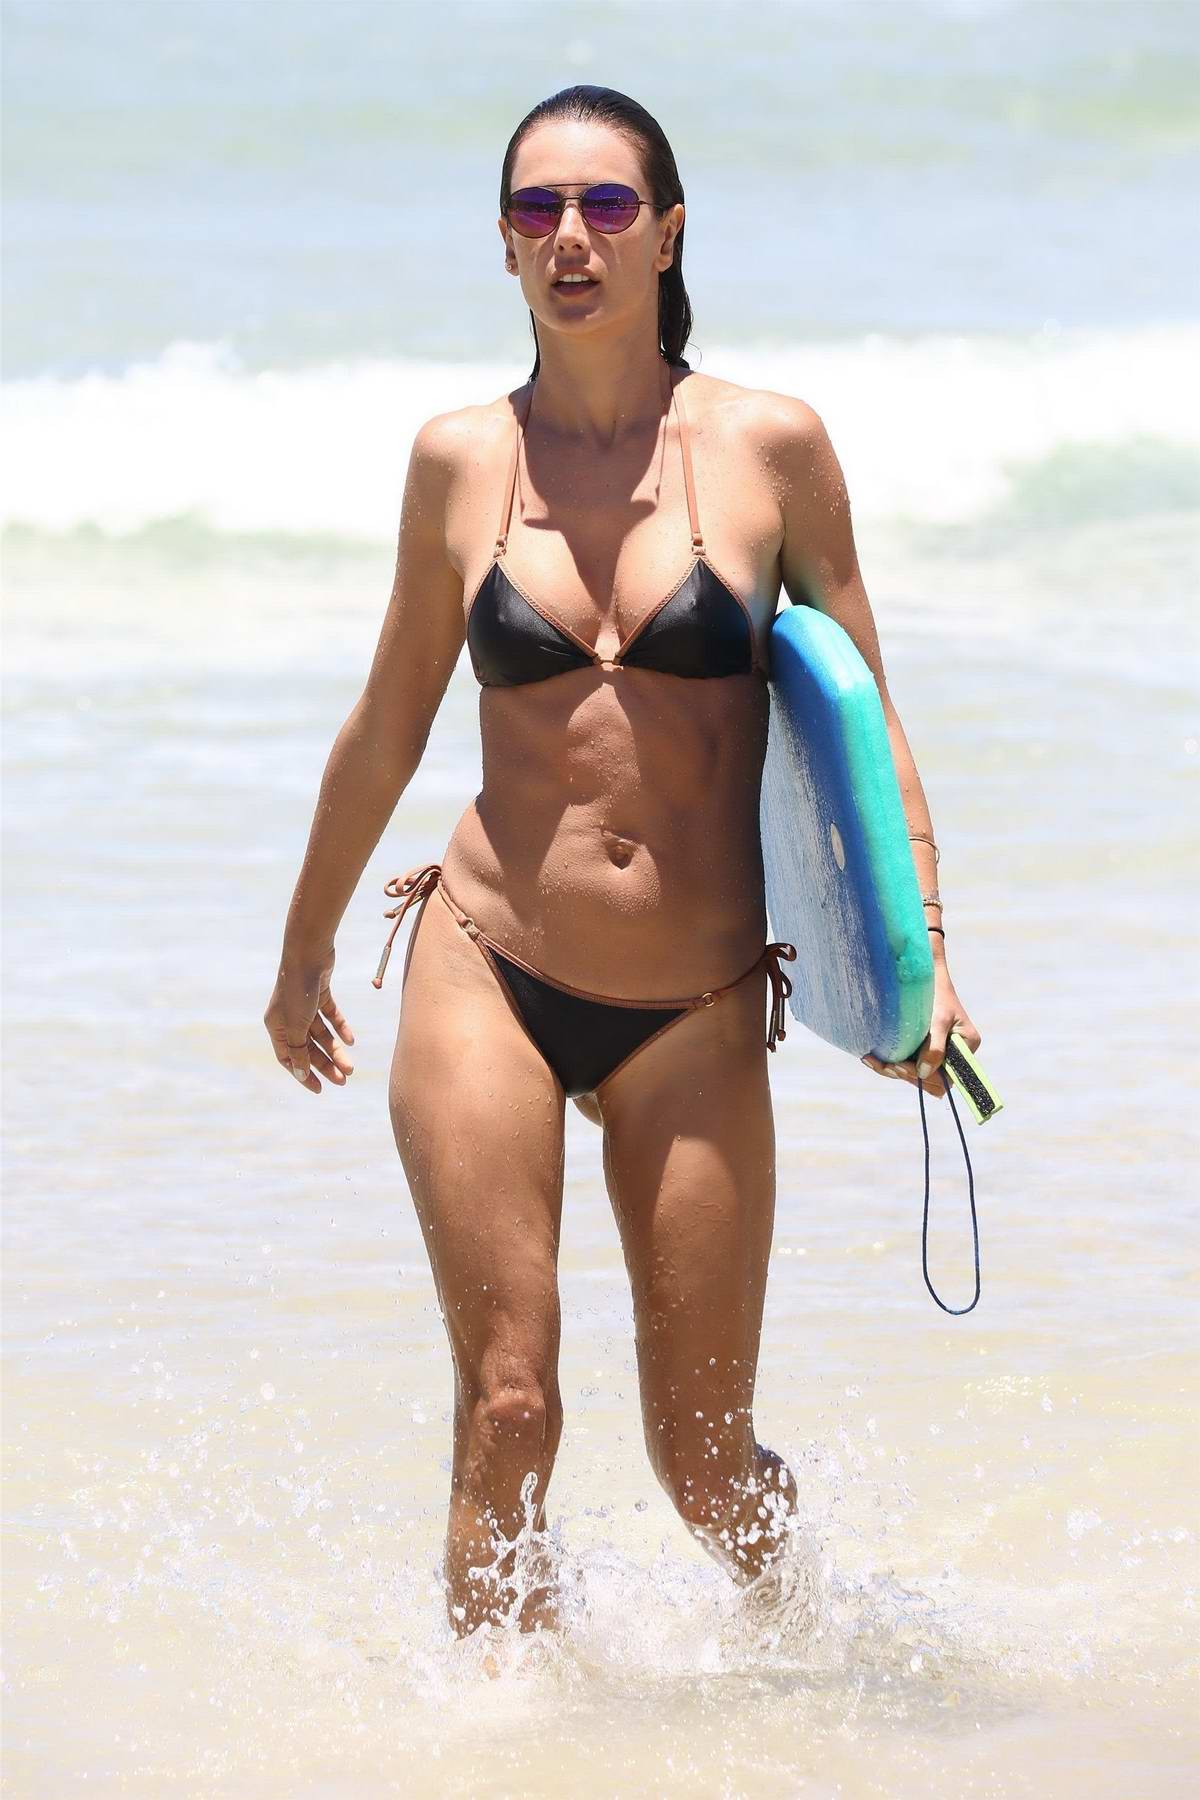 Alessandra Ambrosio hits the beach one more time looking perfect in a black bikini in Brazil